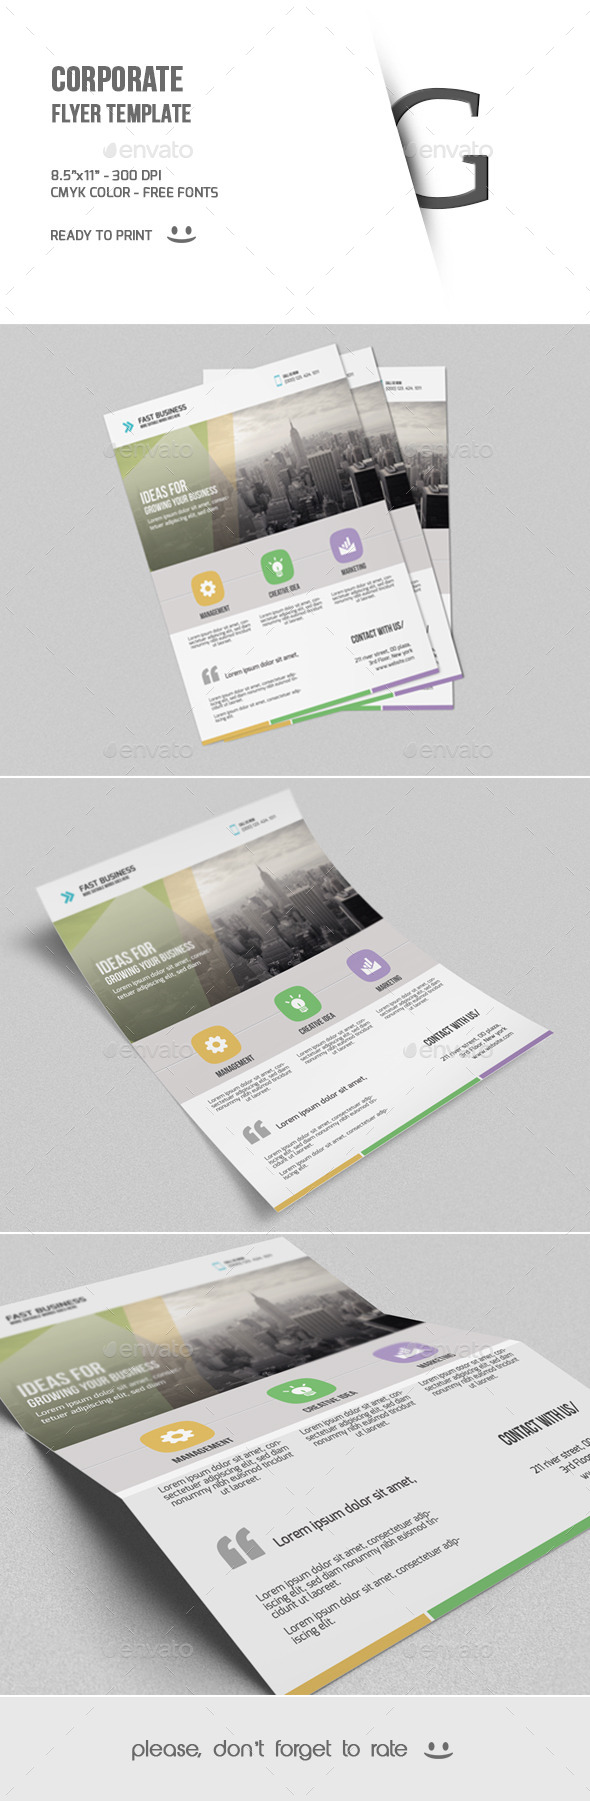 GraphicRiver Corporate Flyer Template 9646859